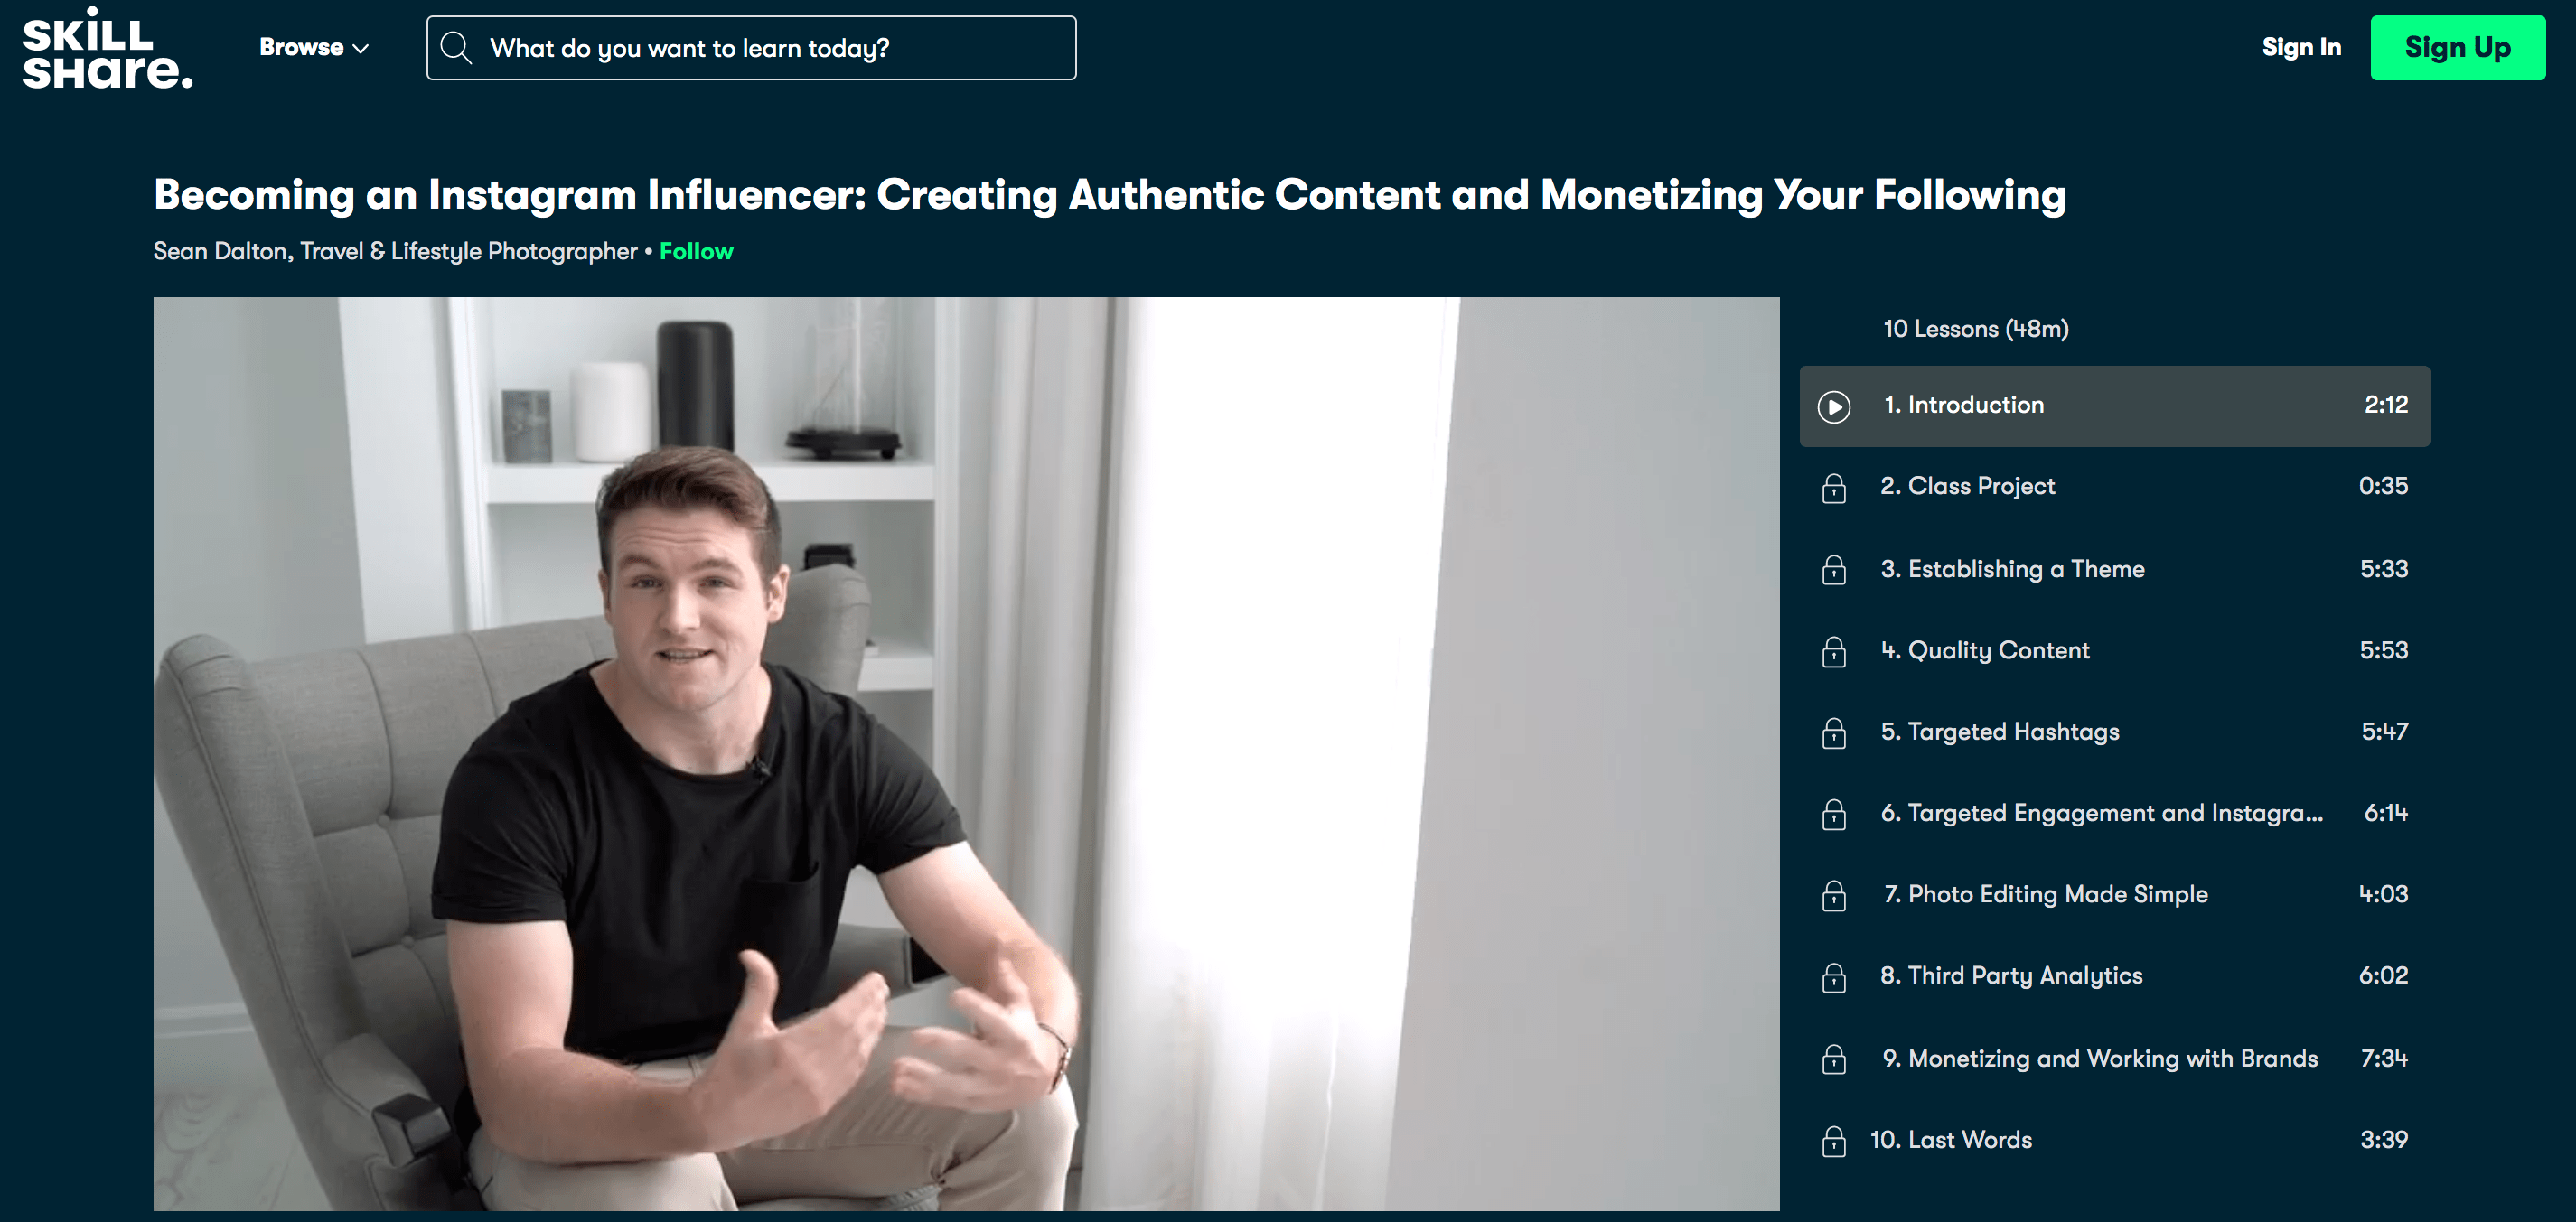 Becoming an Instagram Influencer- Creating Authentic Content and Monetizing Your Following